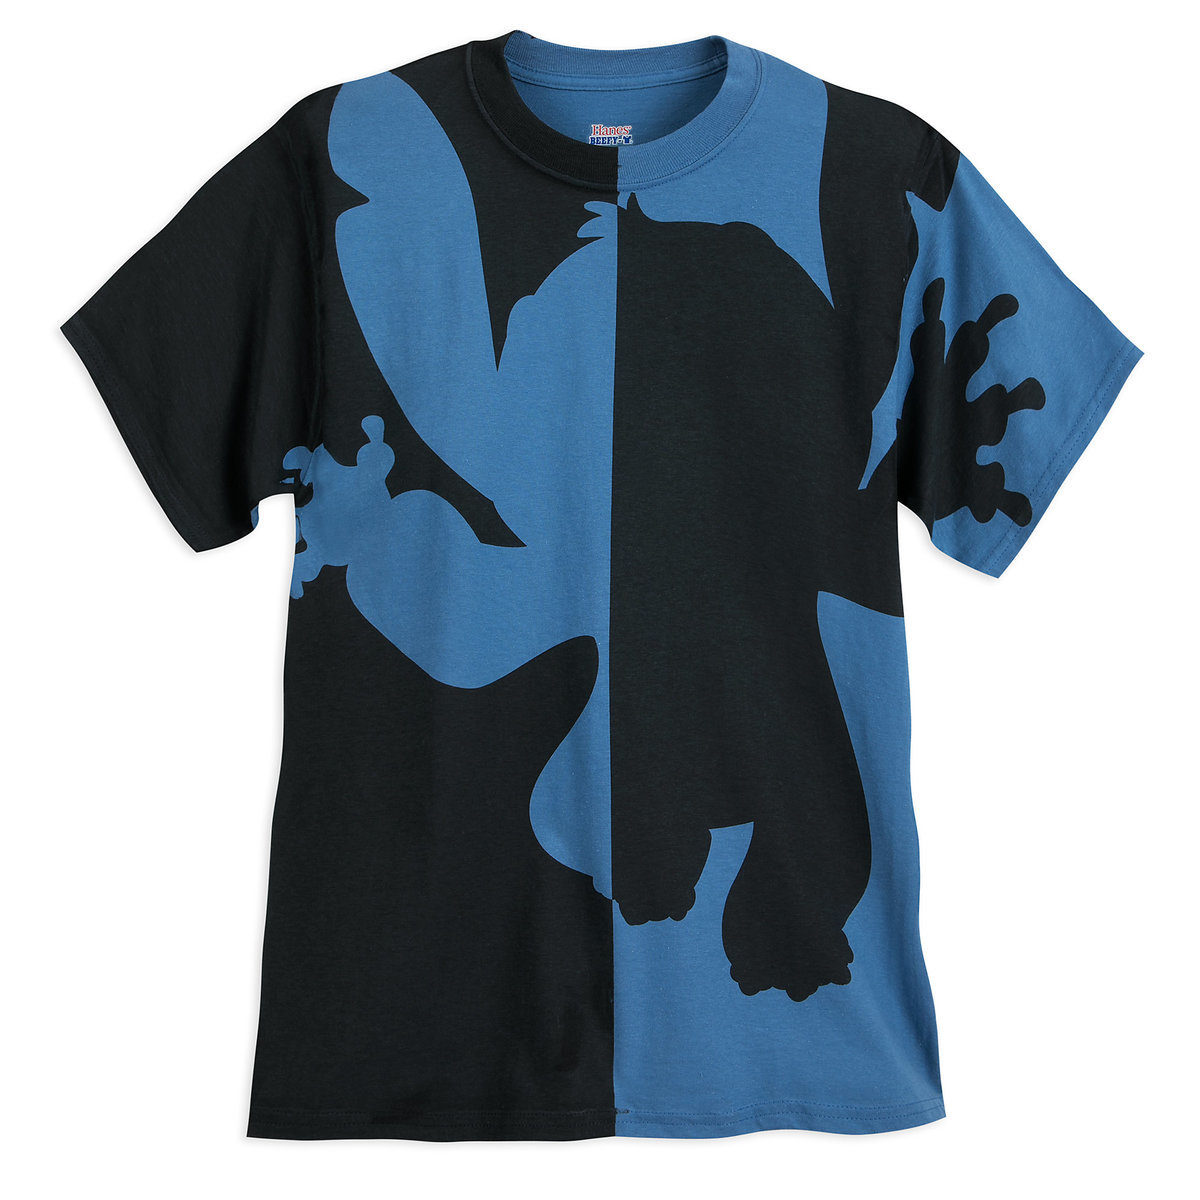 Stitch Silhouette T-Shirt for Adults   shopDisney